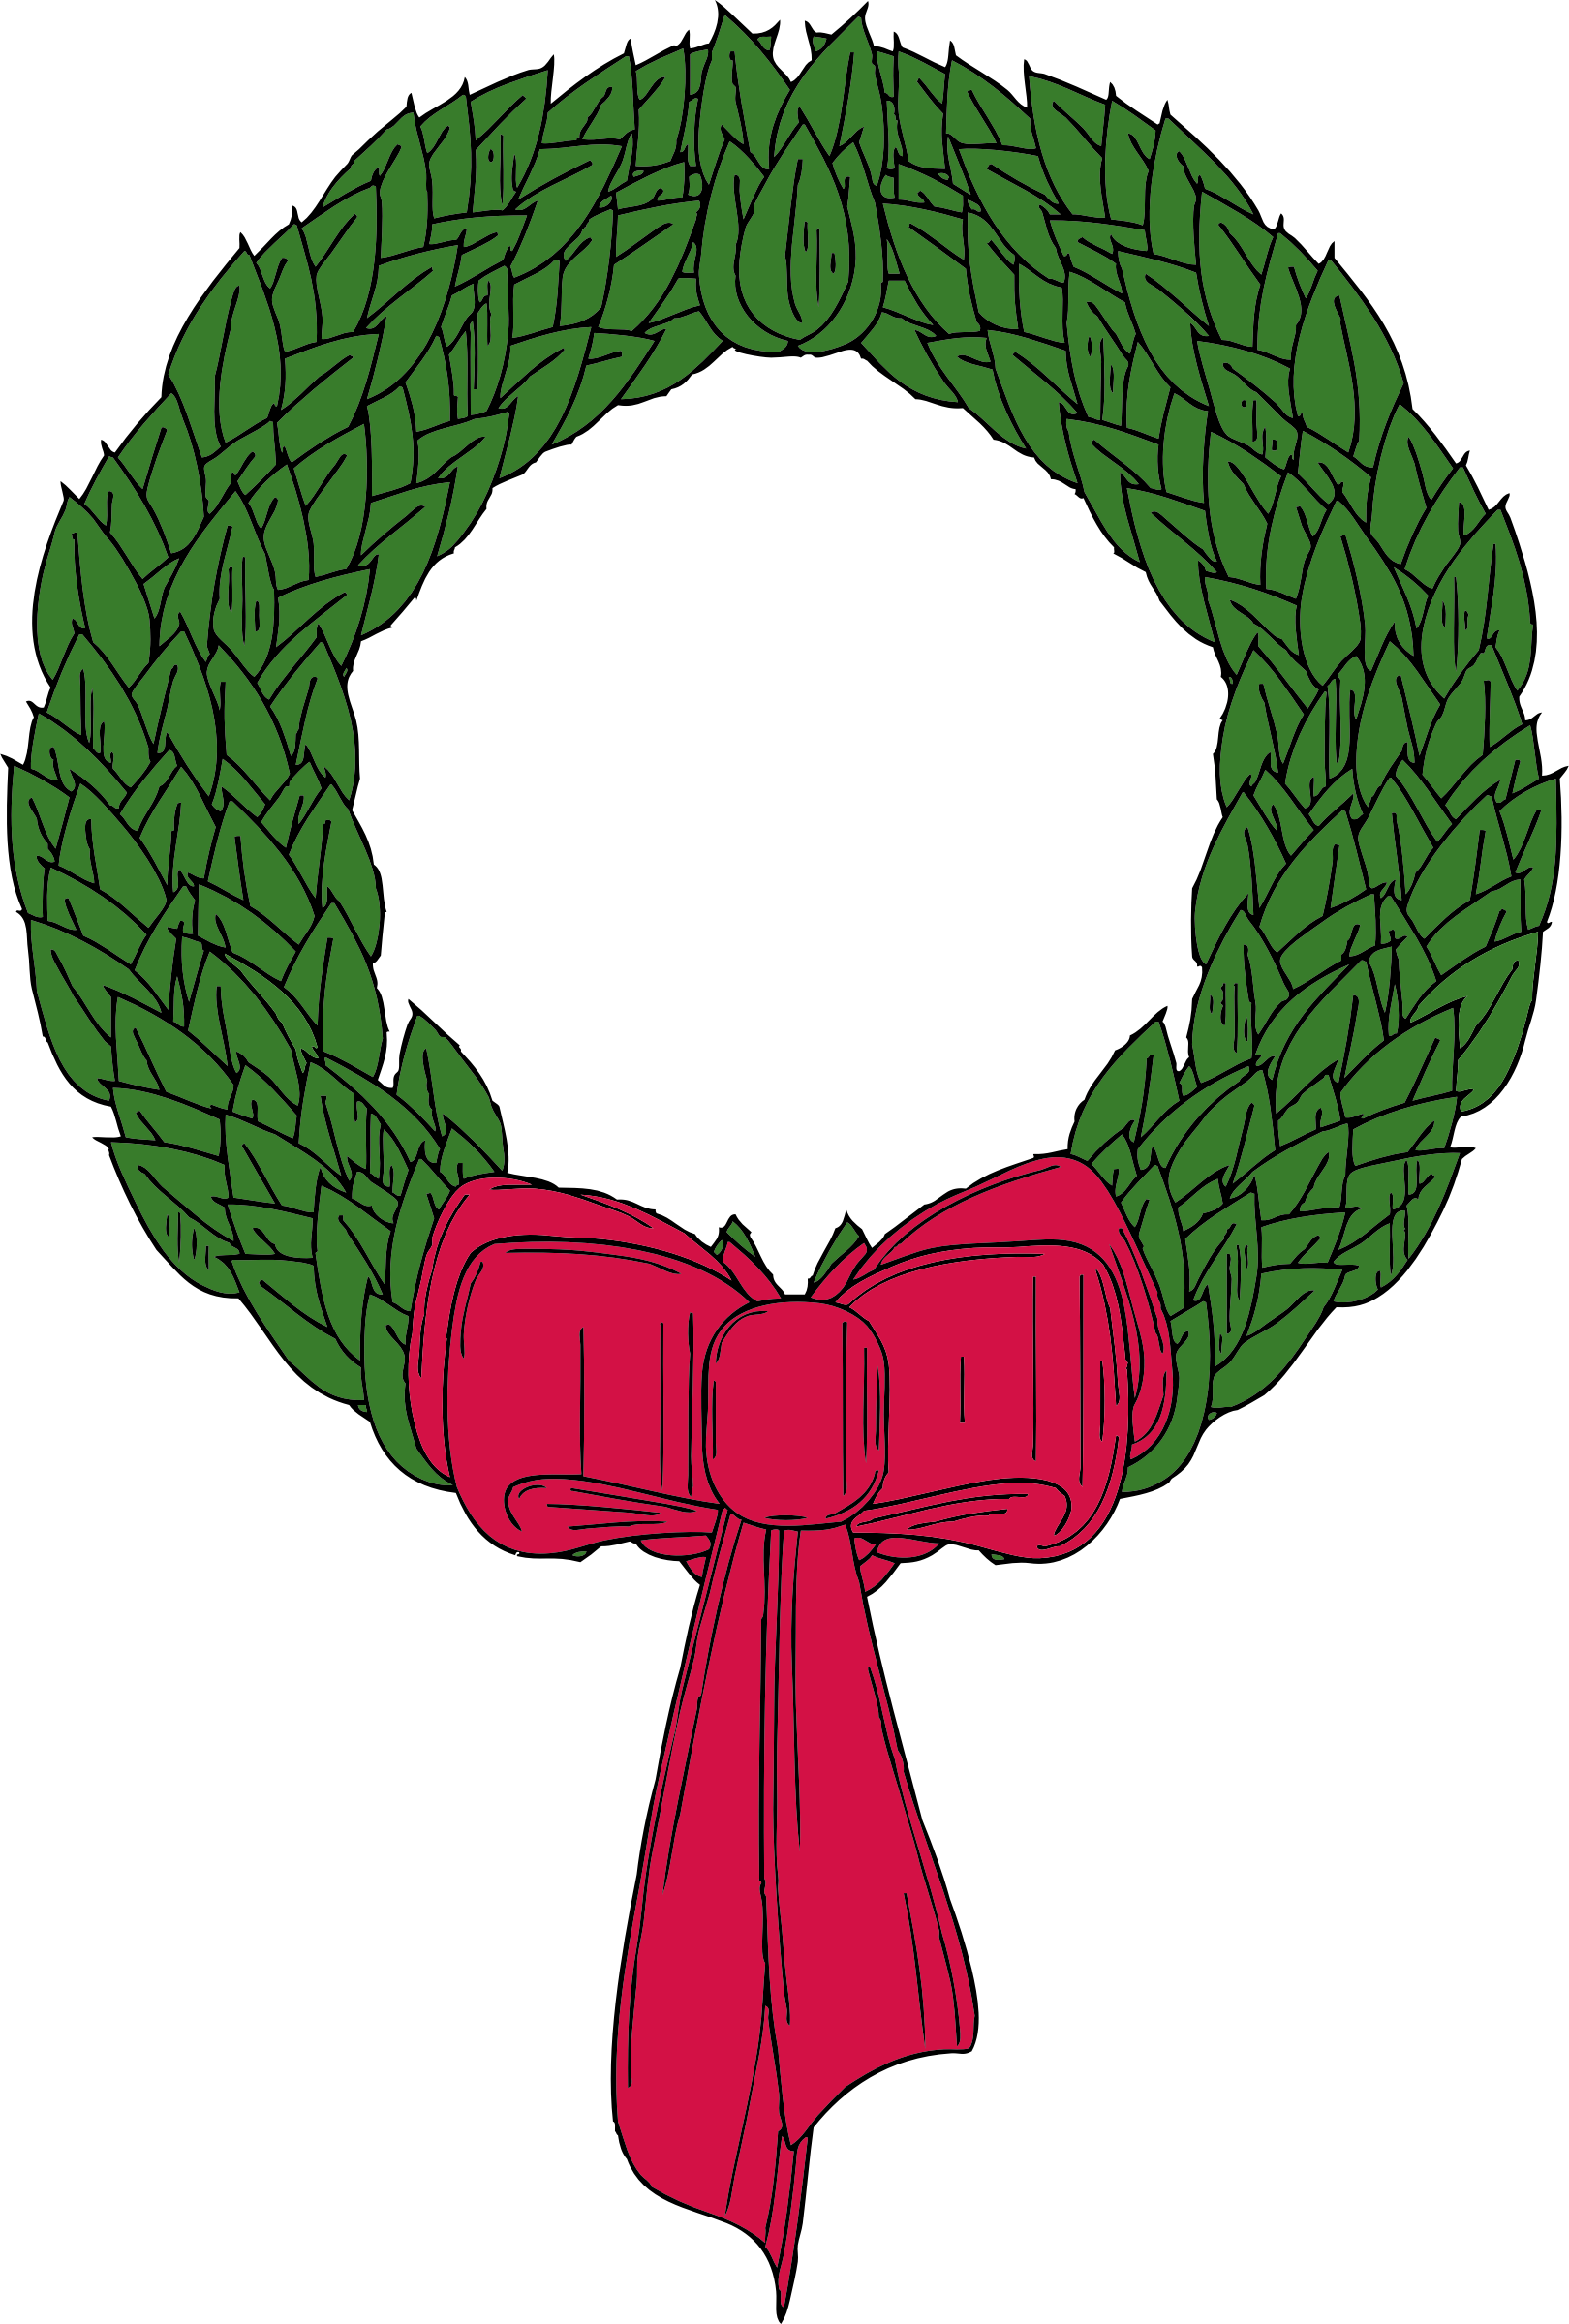 Christmas big image png. December clipart wreath